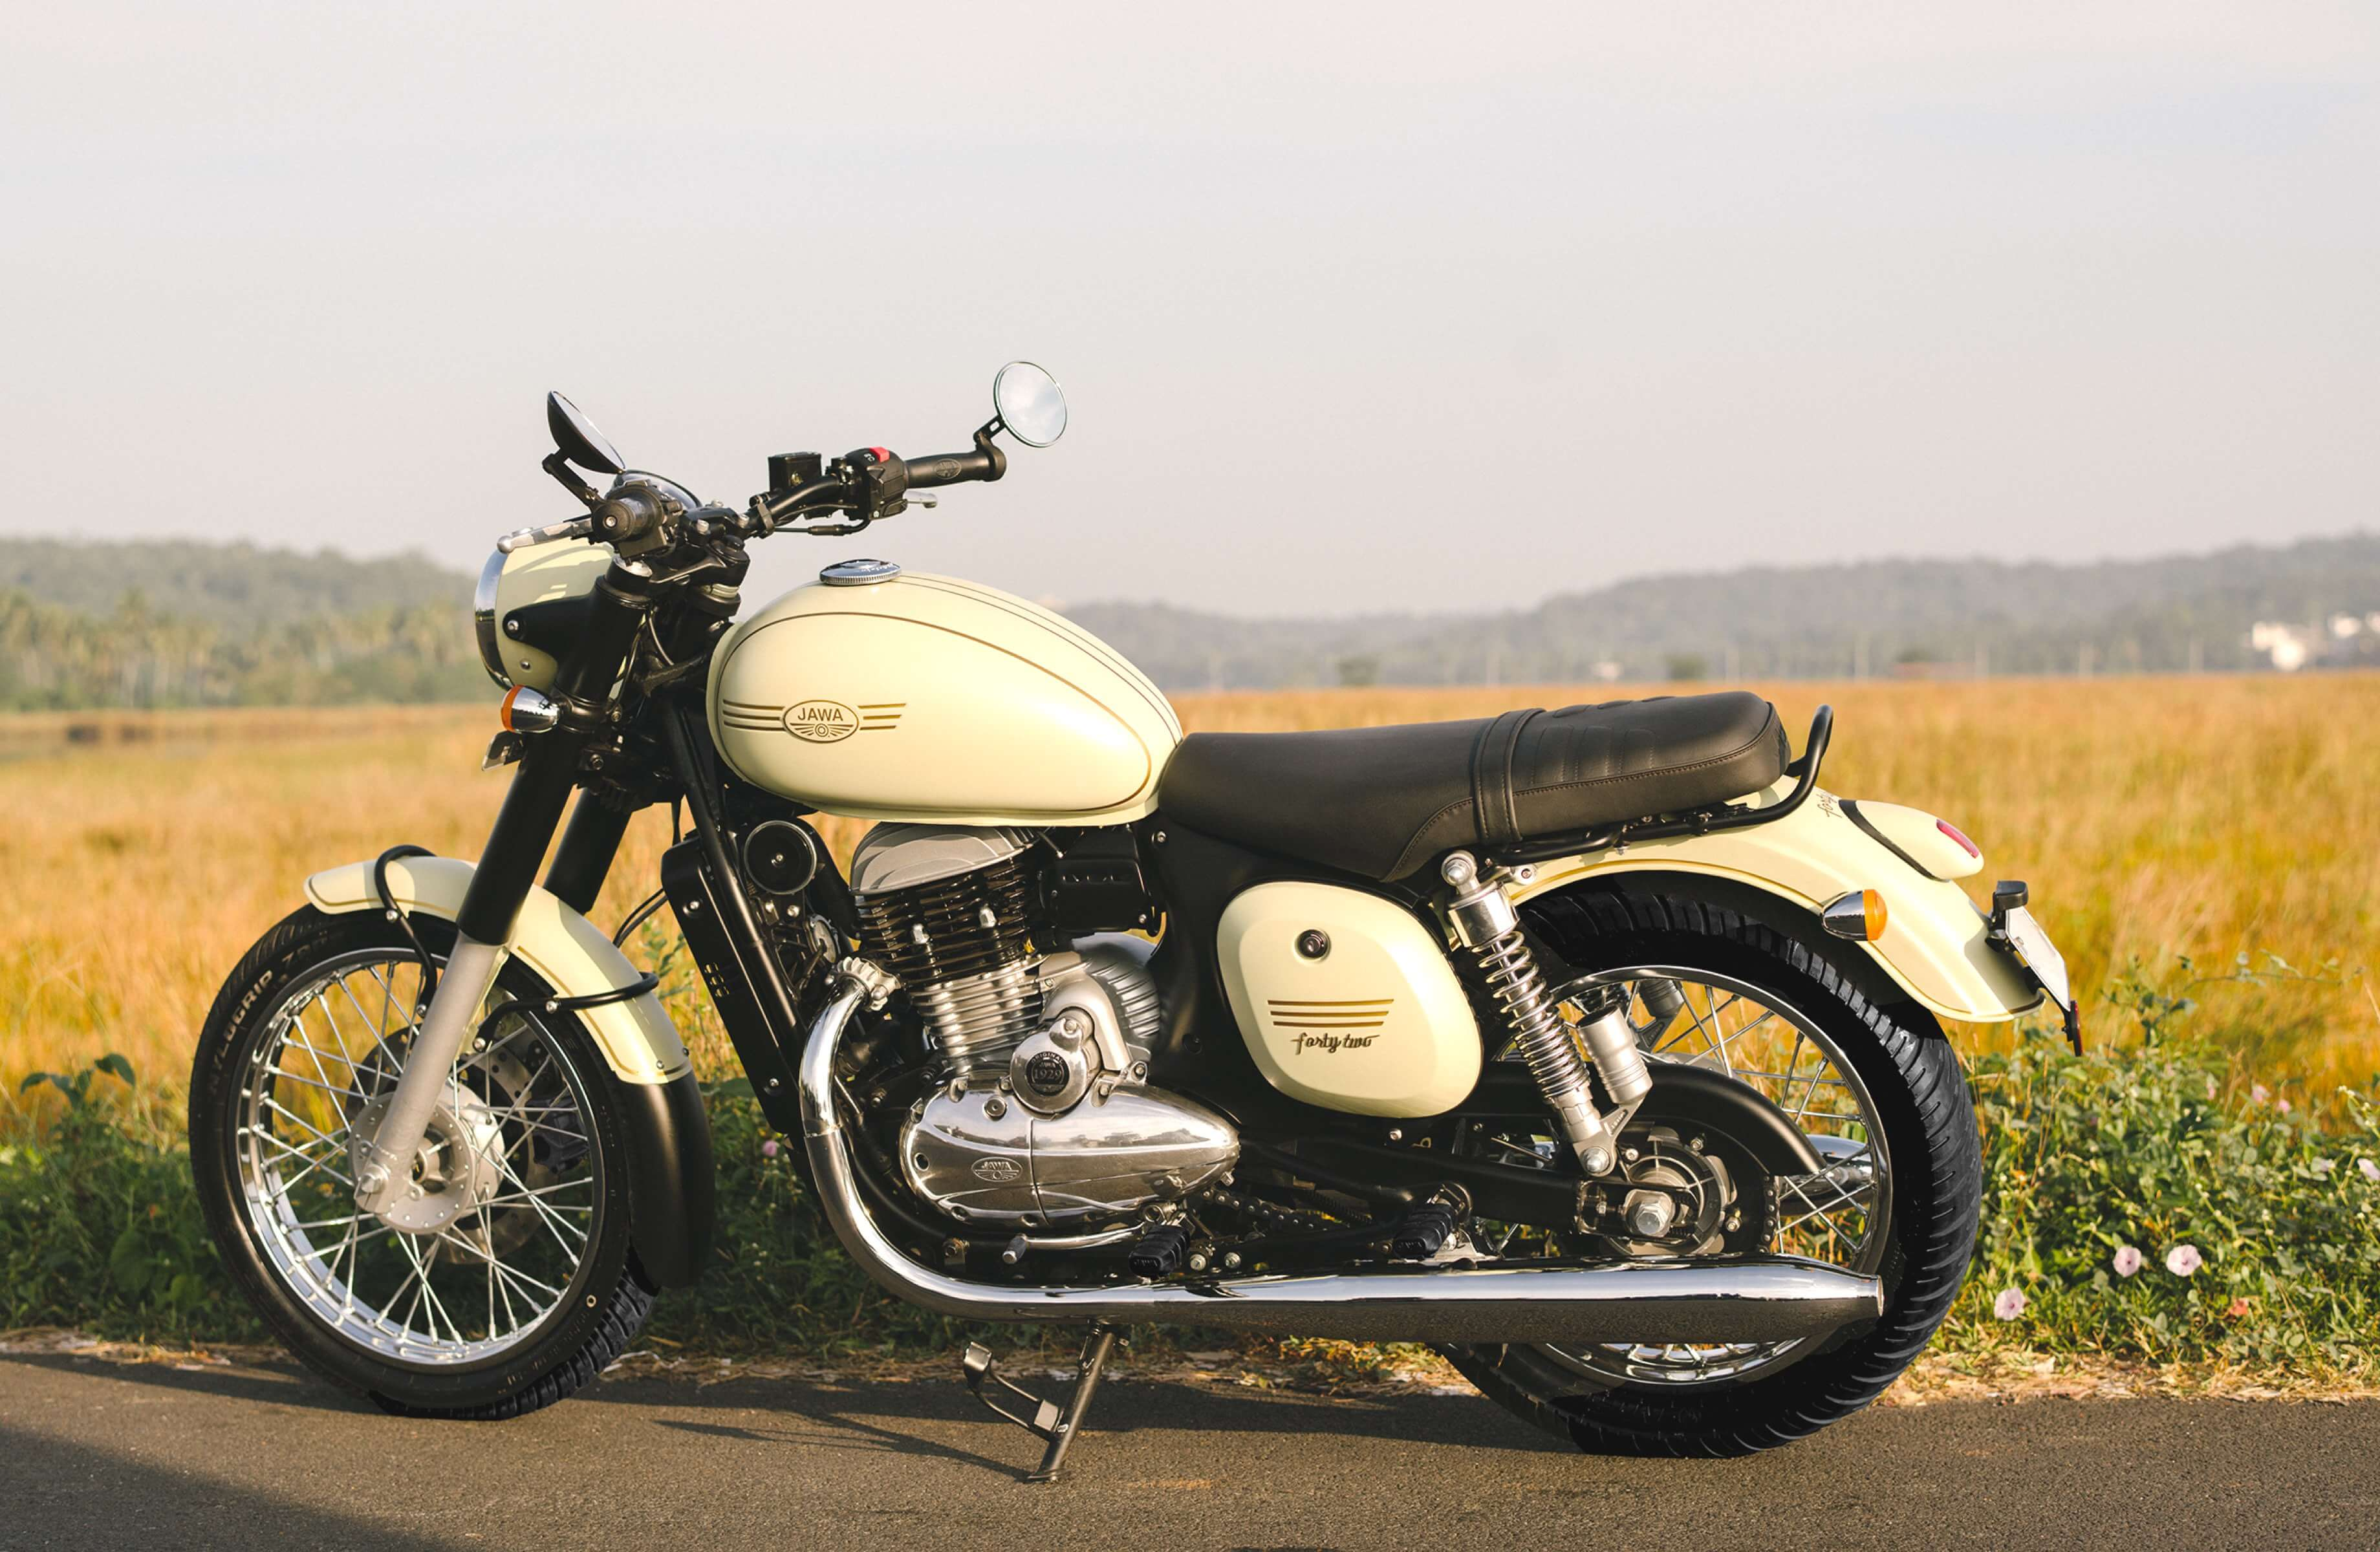 gallery j42 1 - Return of JAWA Motorcycle after 23 Years